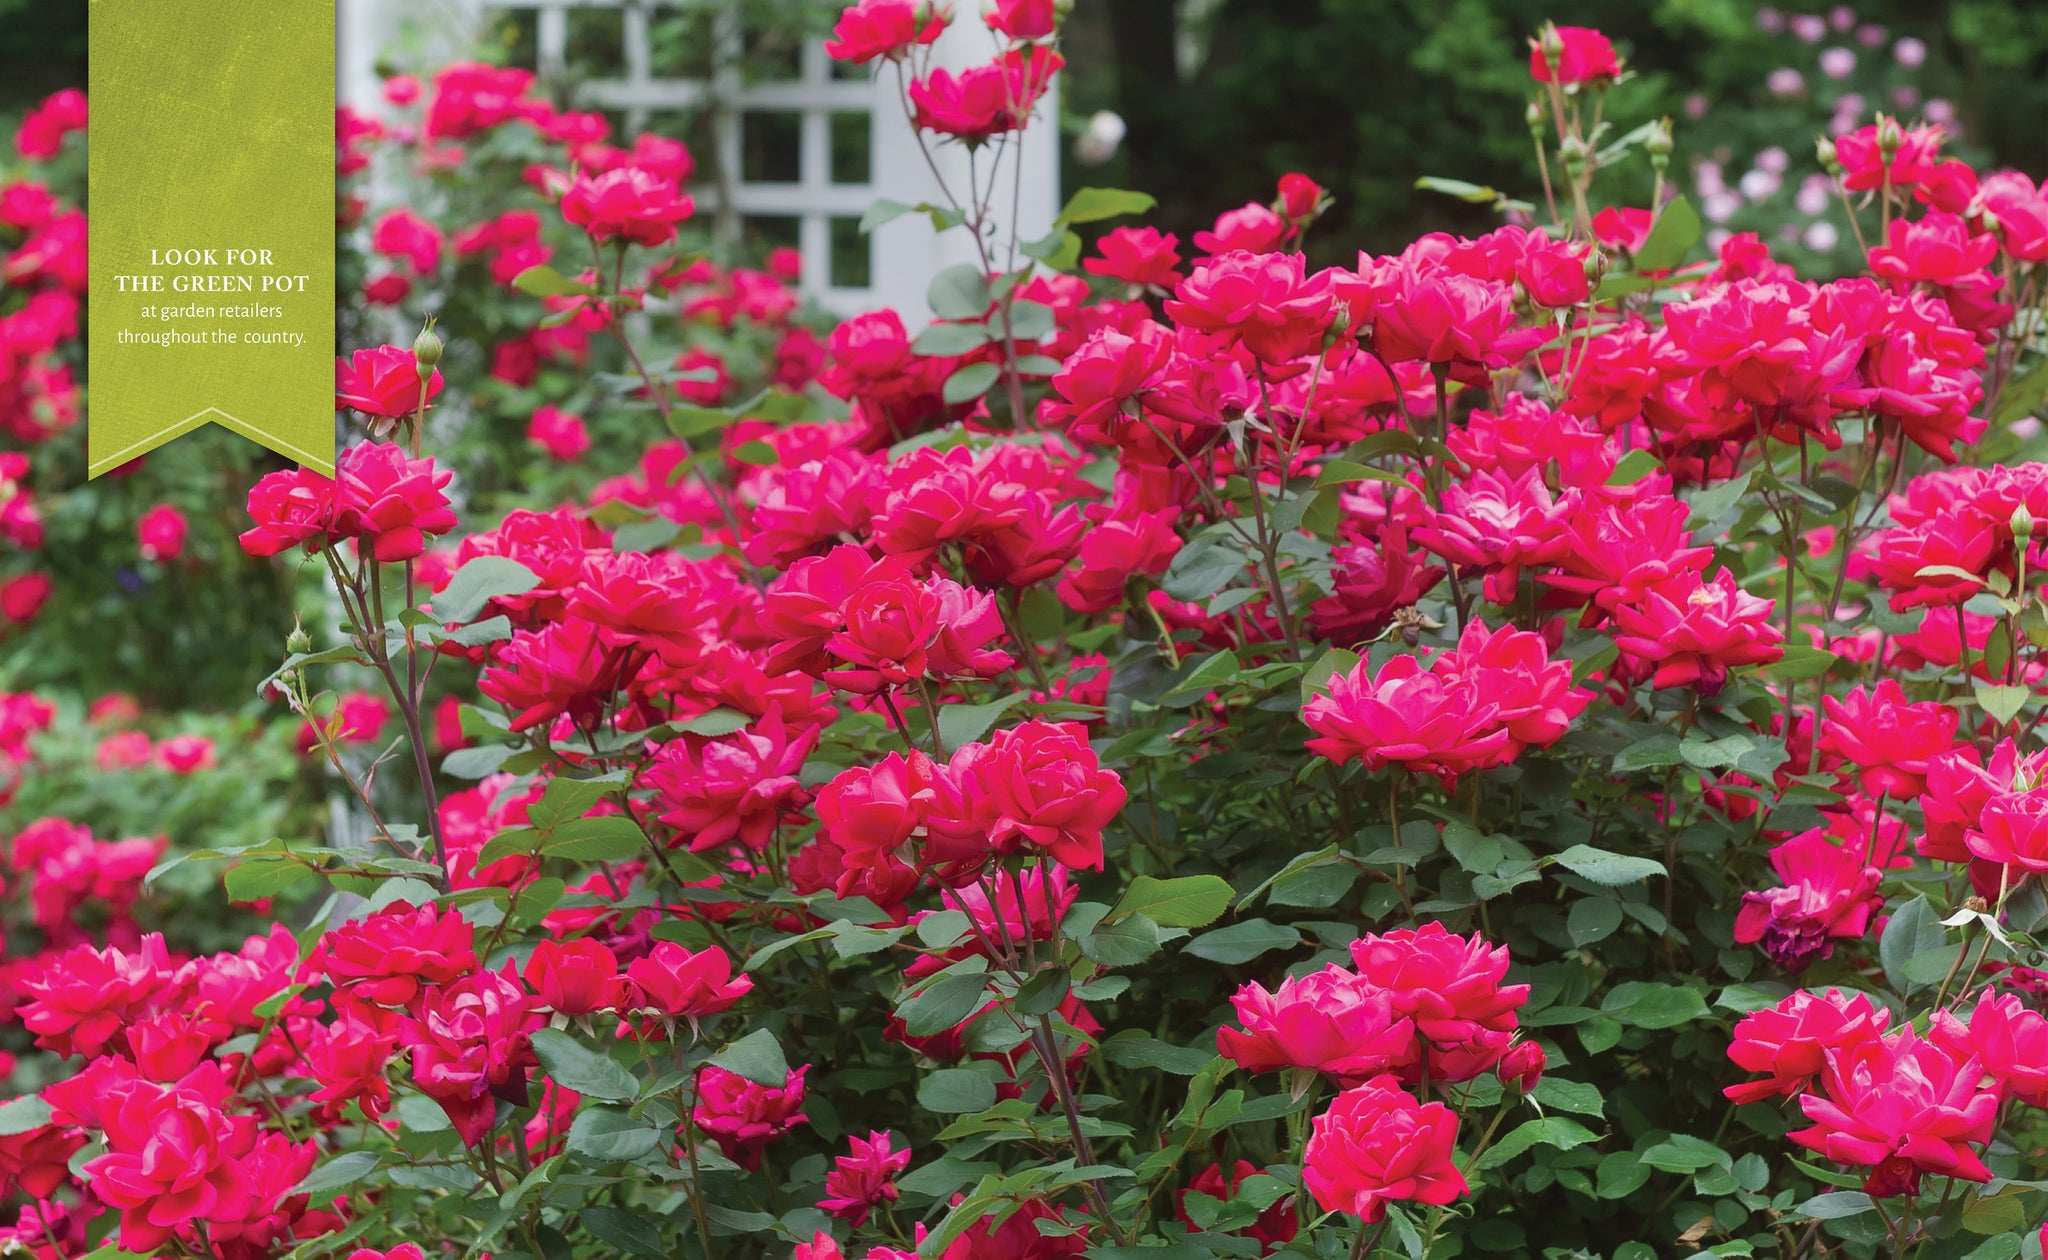 RED KNOCKOUT ROSE- stands out in the landscape from the contrast between pure red blooms and dark green foliage. It blooms from spring through fall.